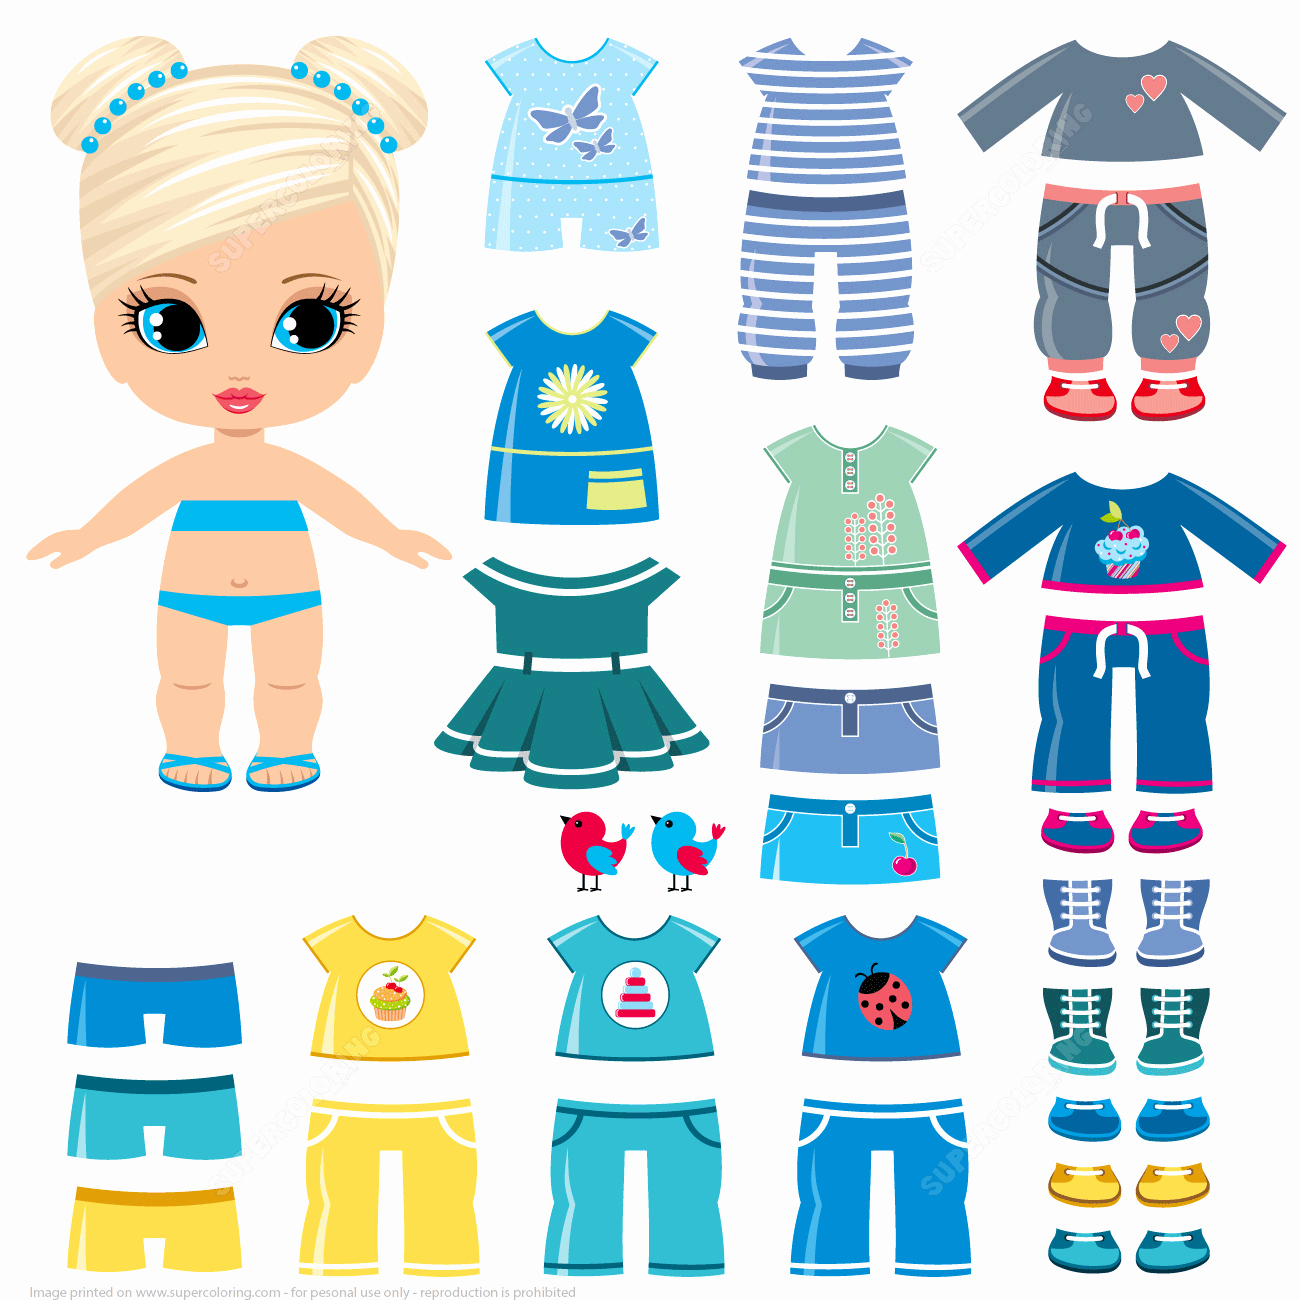 Paper Doll Clothing Template Unique Summer Clothing and Shoes for A Little Girl Paper Doll